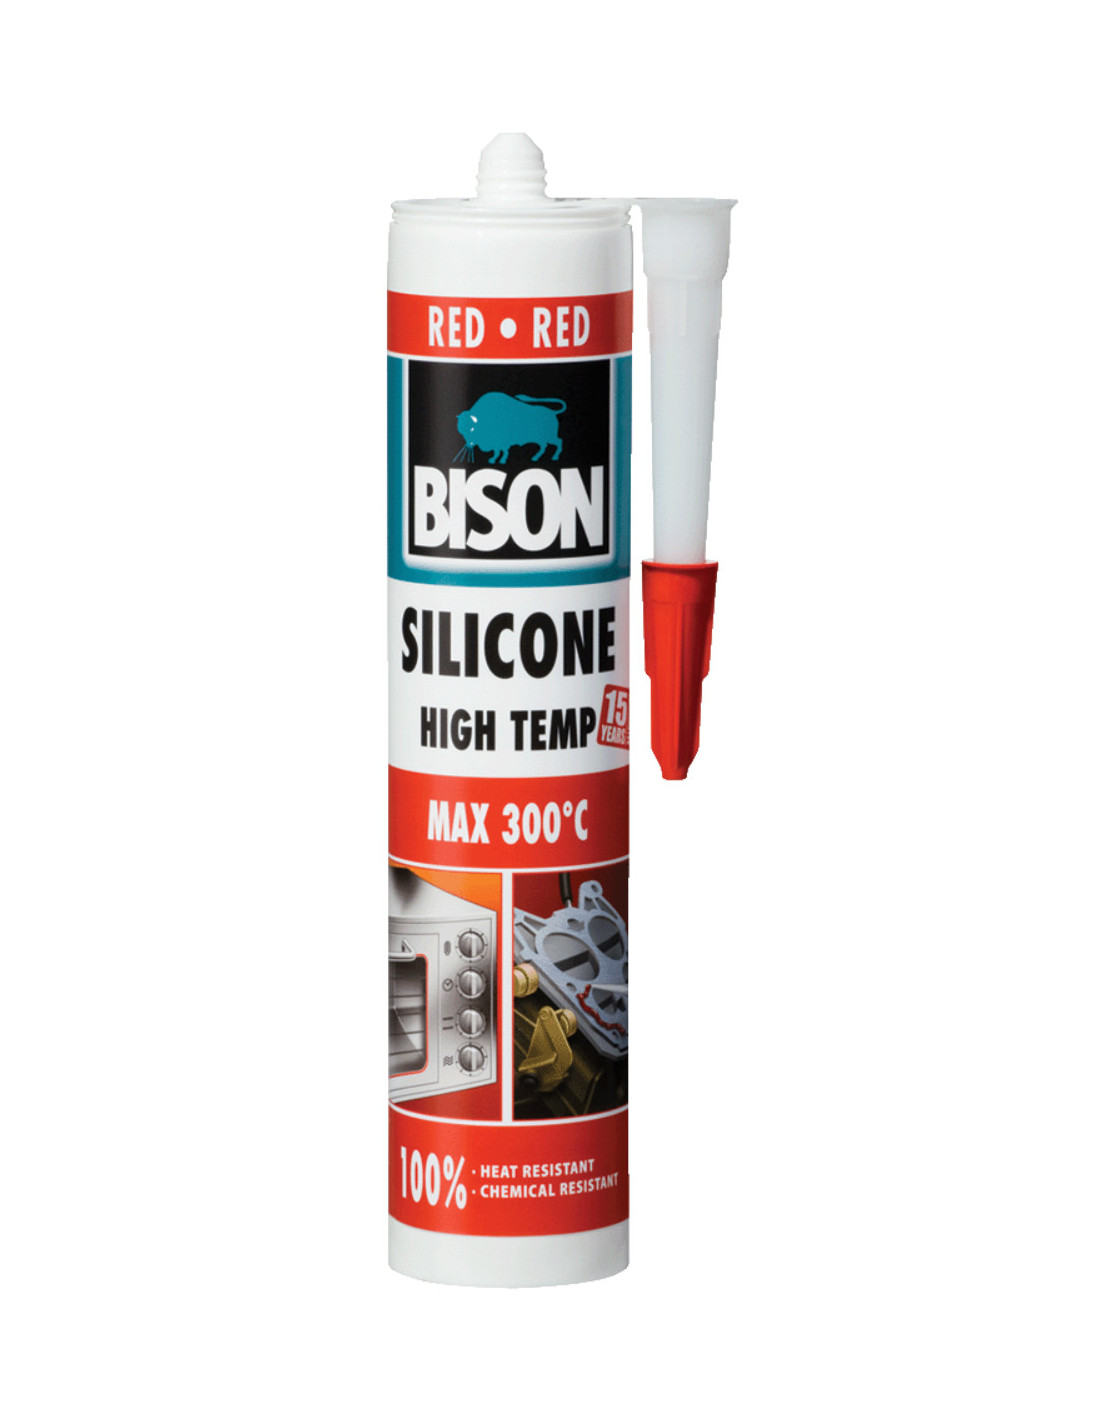 Peindre Sur Glycero Sans Poncer bison silicone high temp silicone thermorésistant rouge 280 ml